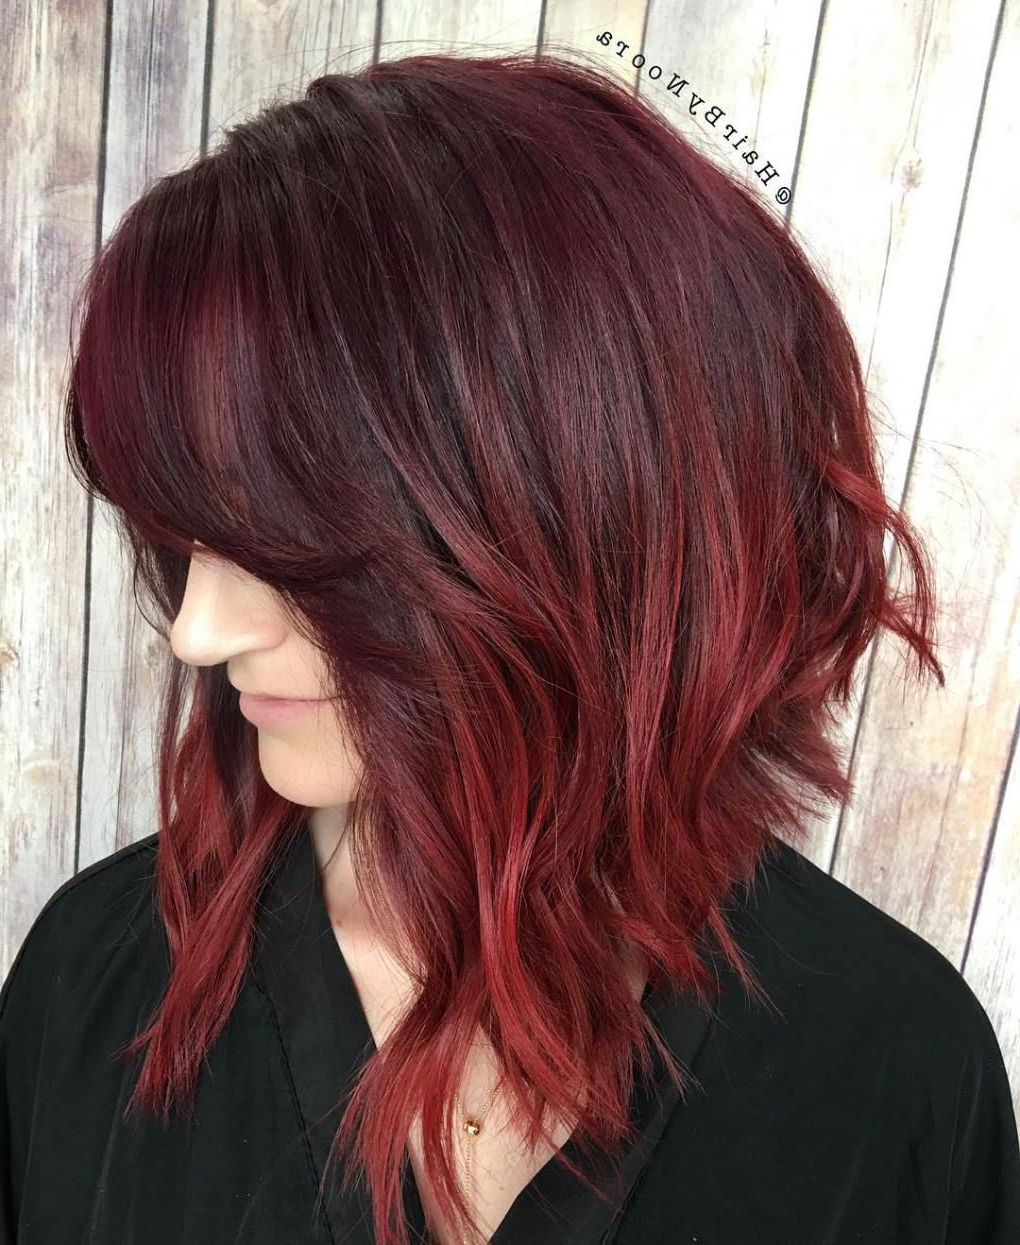 Trendy Jagged Red Ombre Hairstyles With 20 Ways To Make A Long Inverted Bob All Your Own (View 2 of 20)